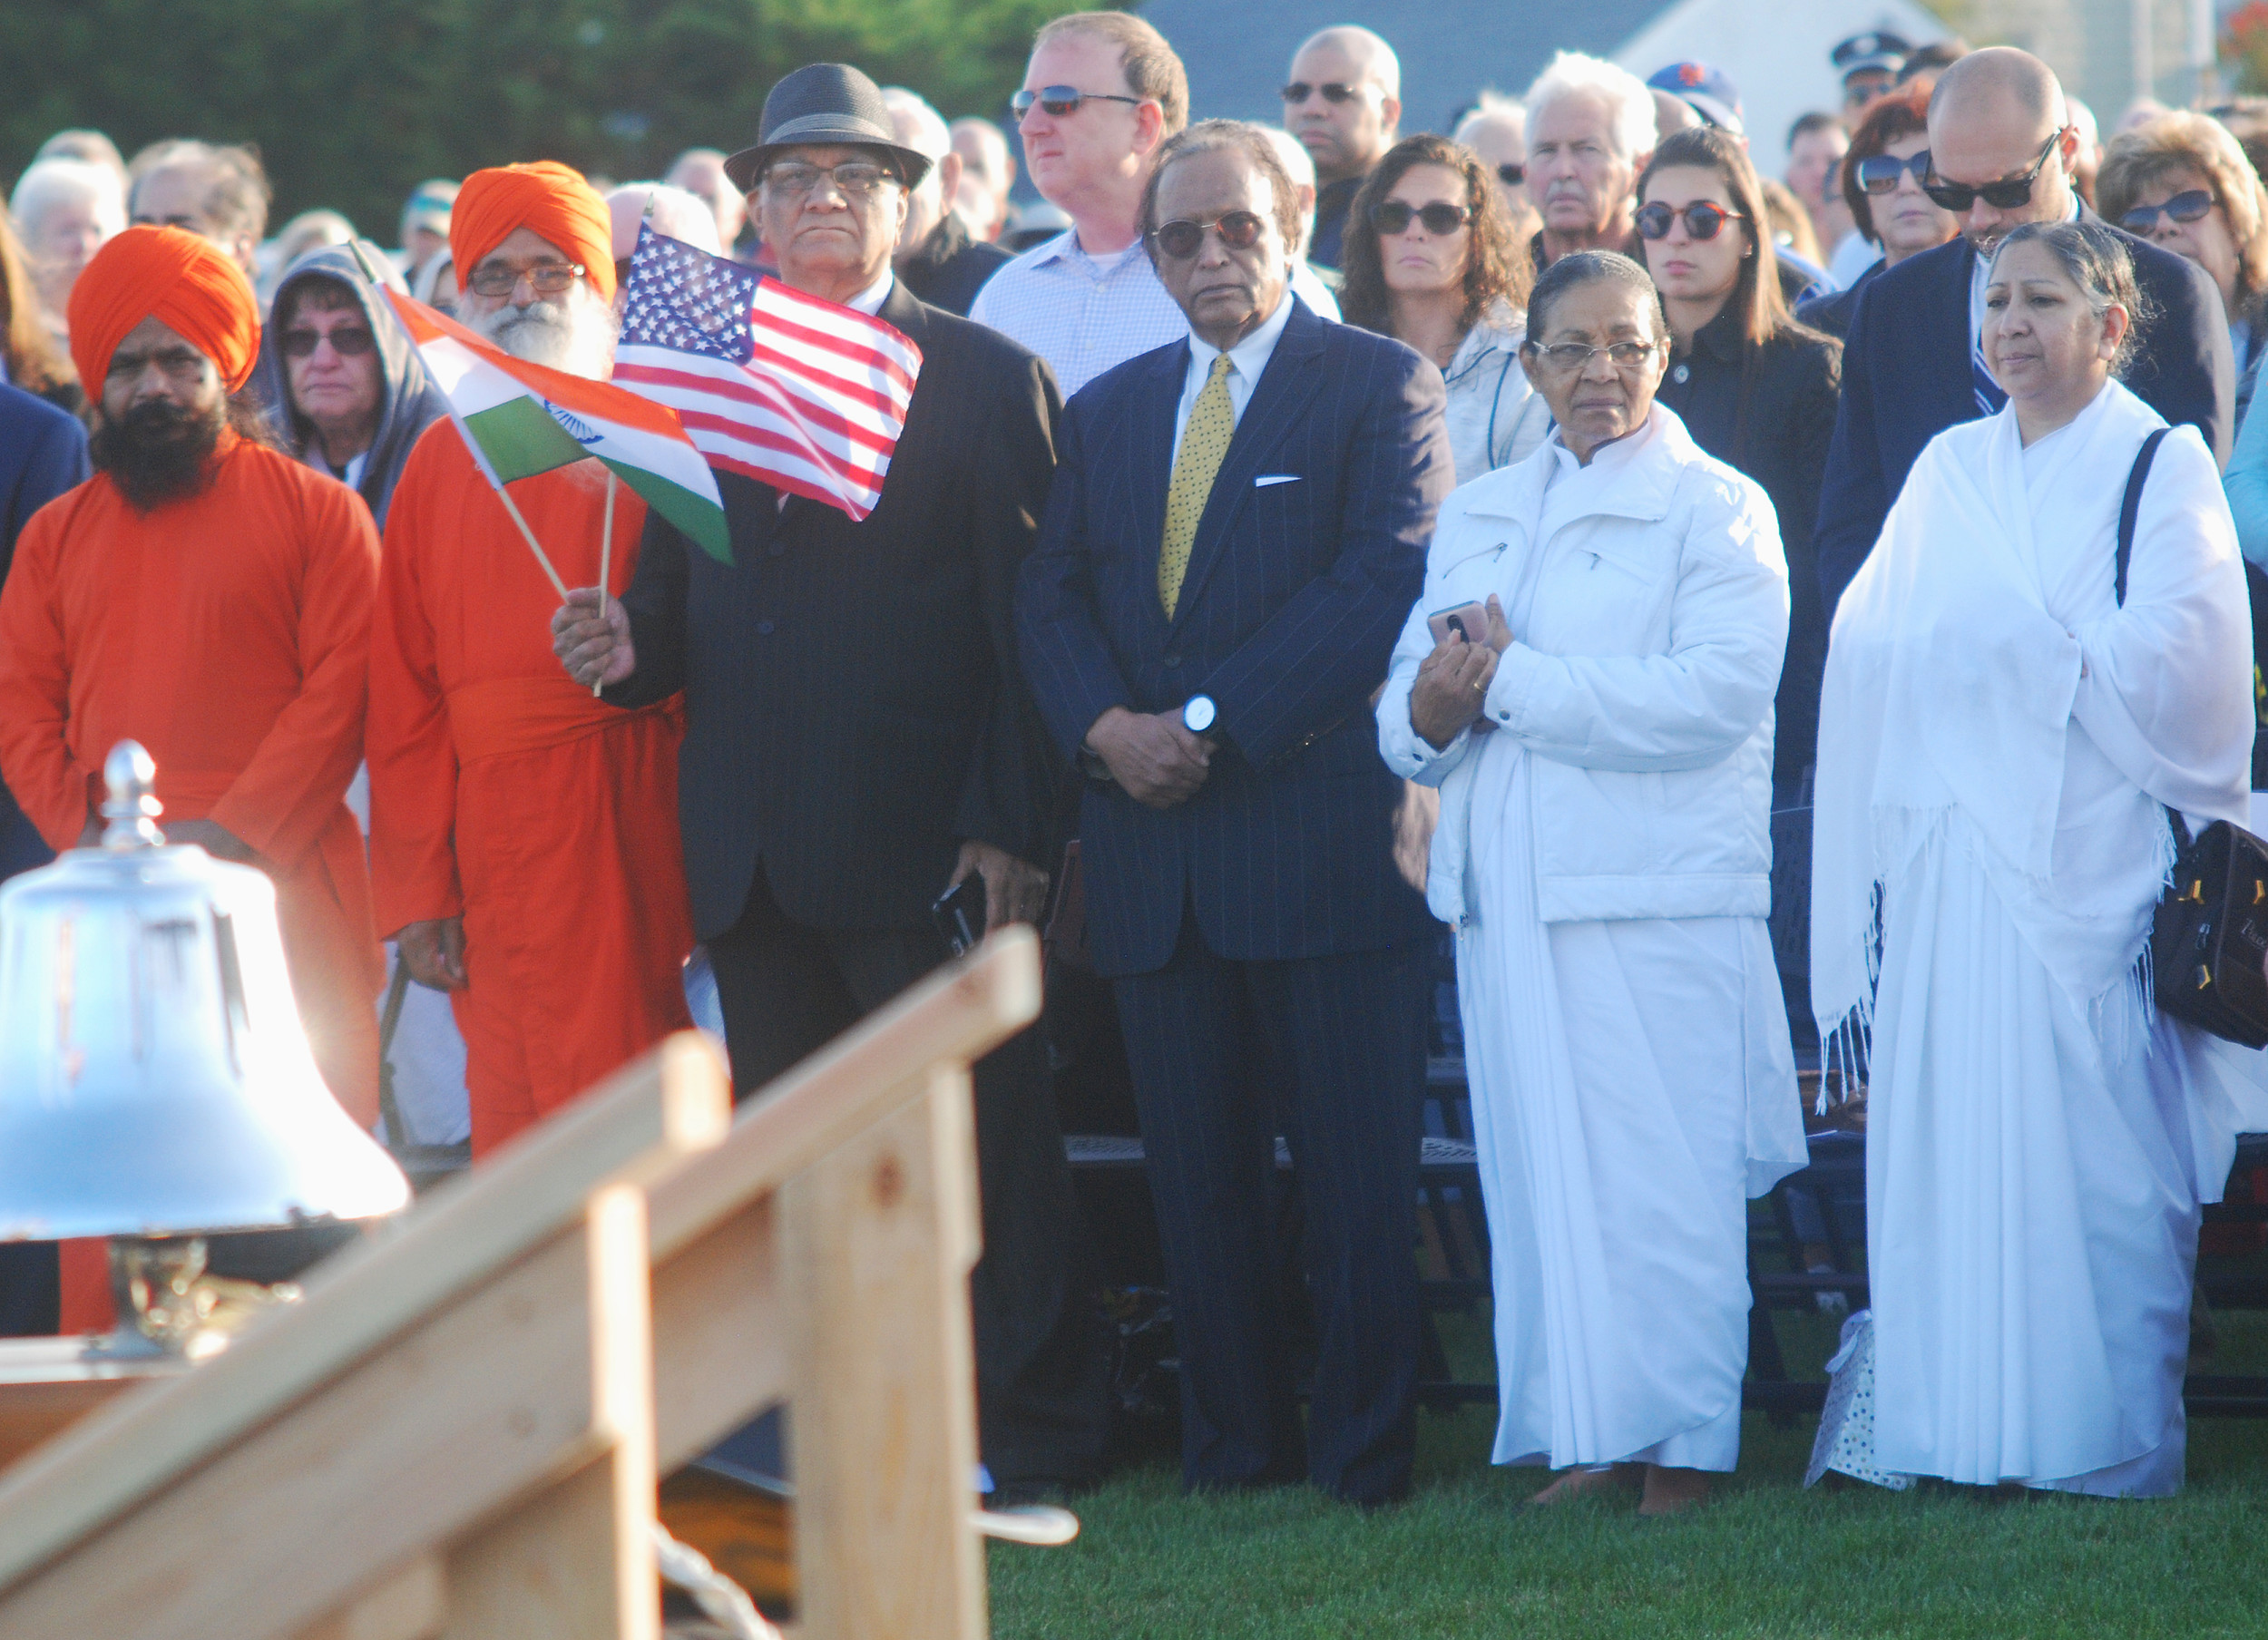 Representatives of multiple religions took part in the dedication ceremony.